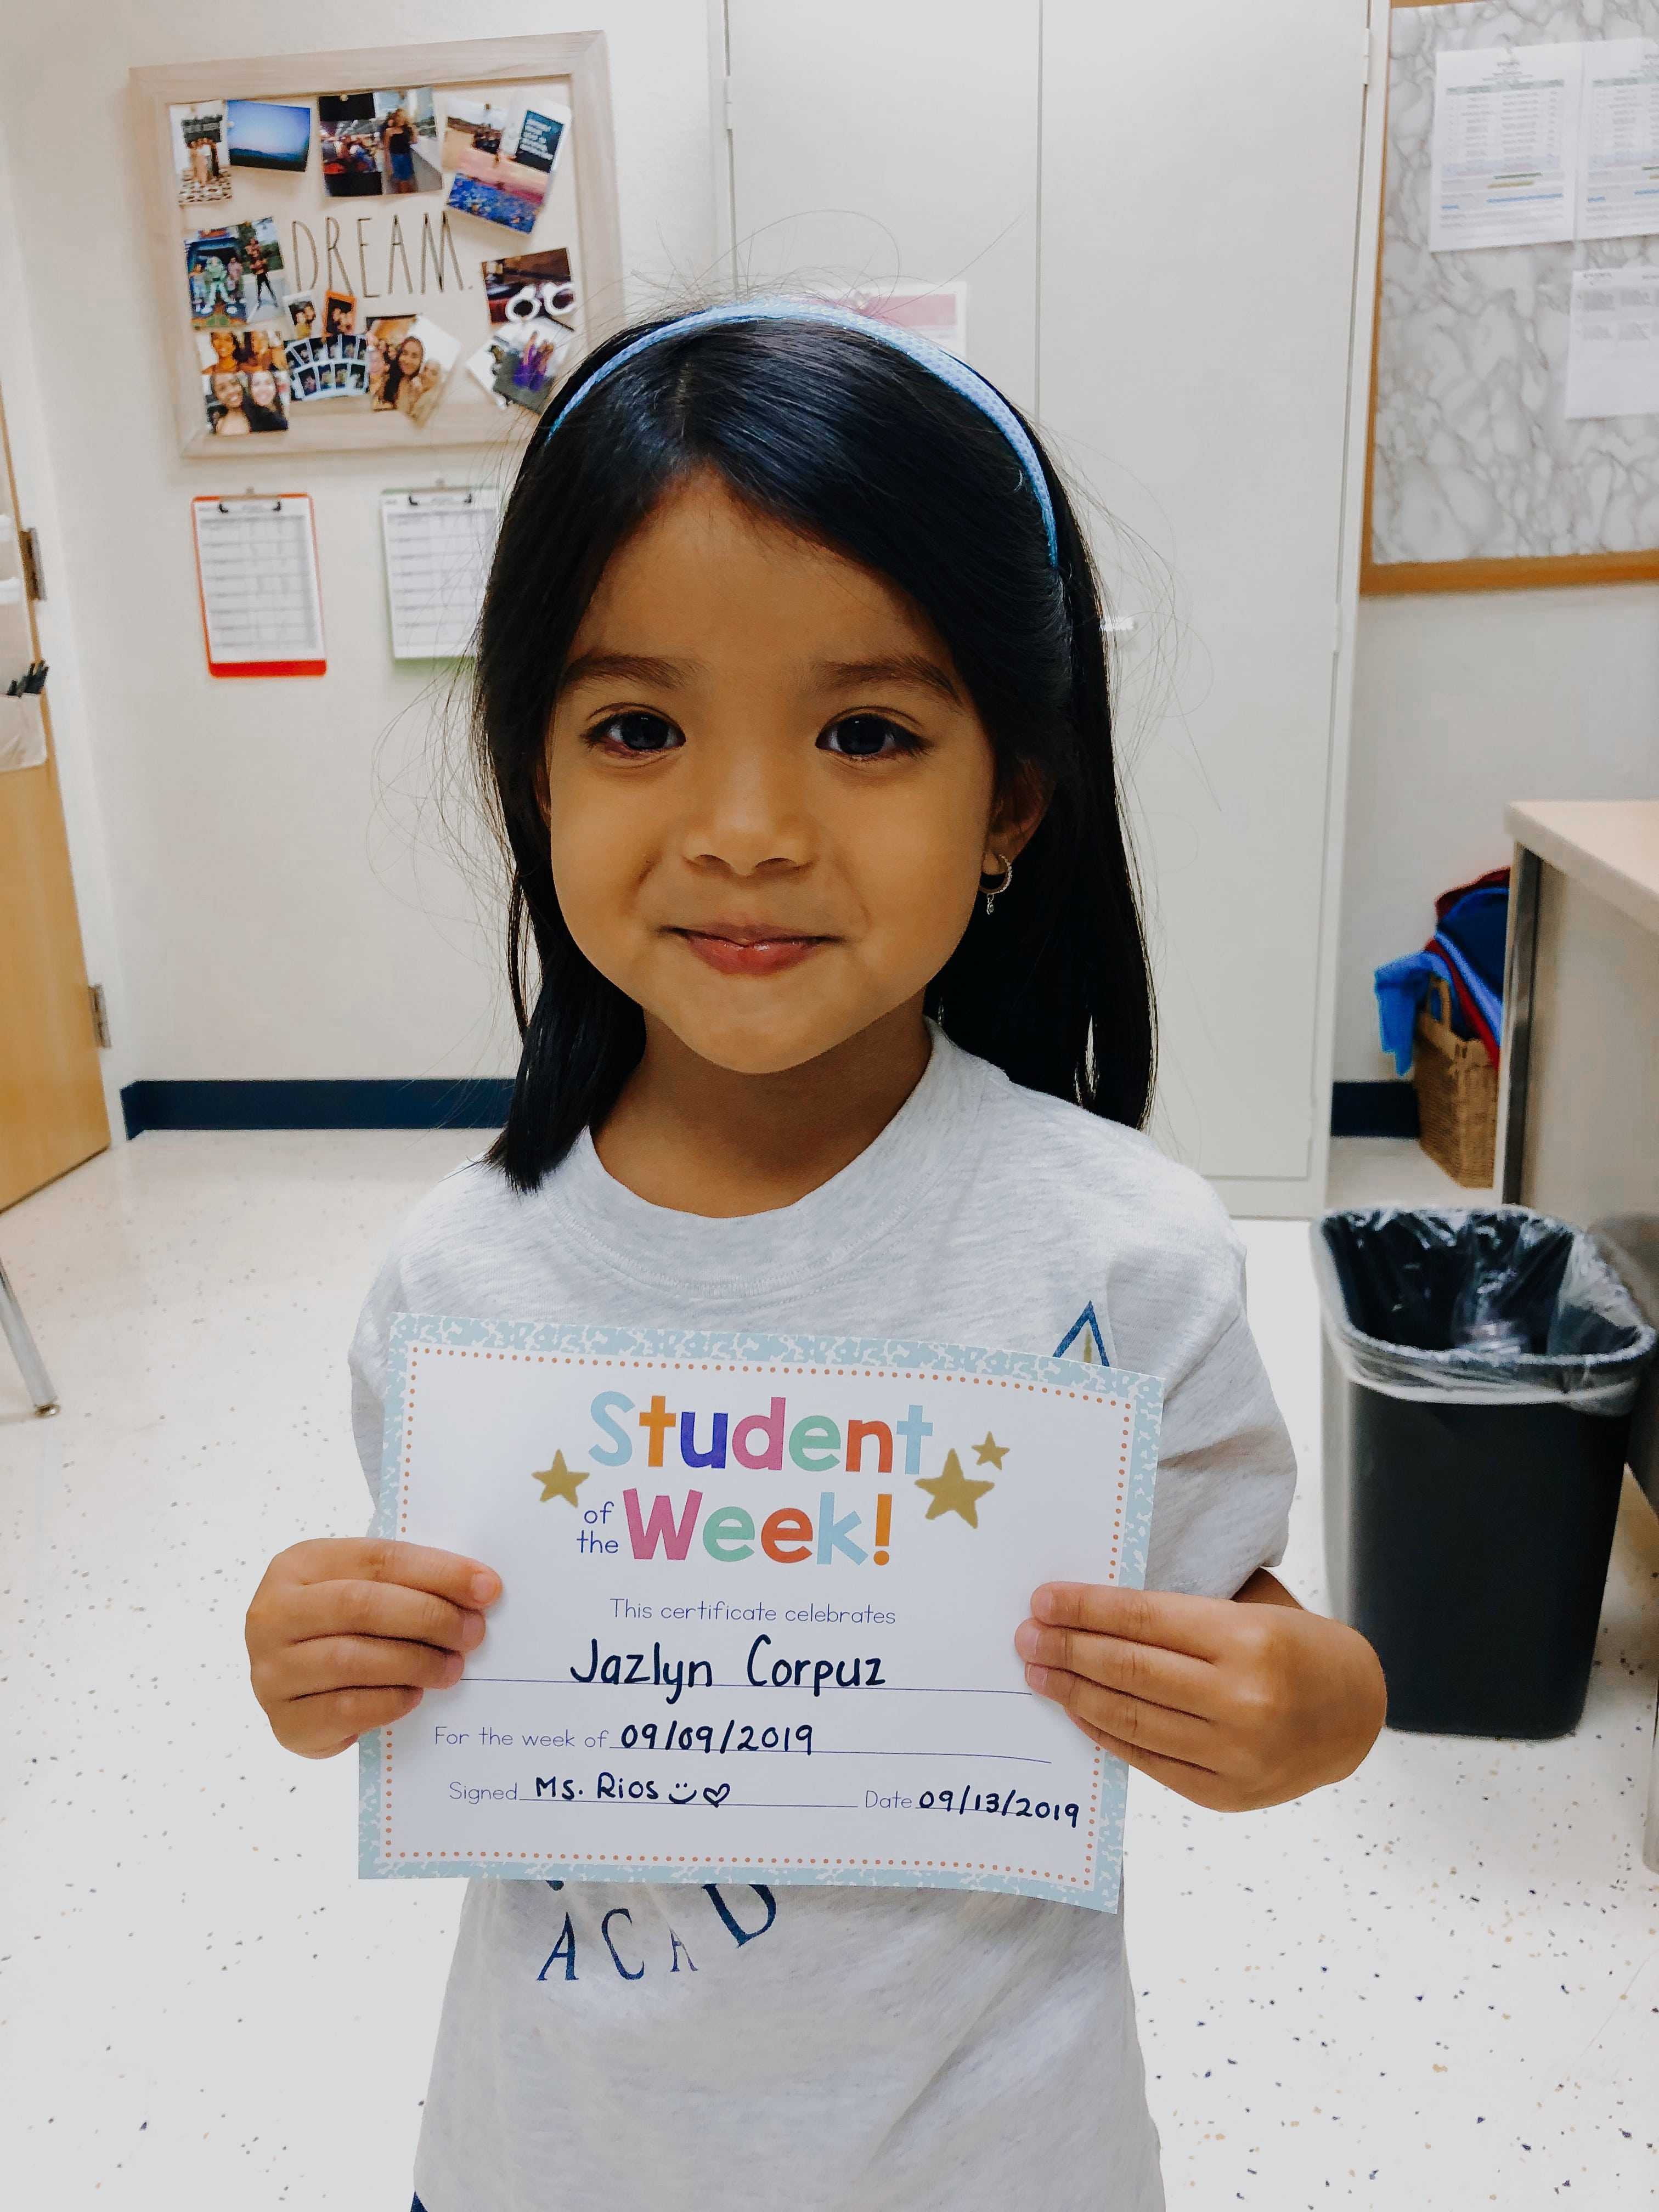 STUDENT OF THE WEEK! Image number 4